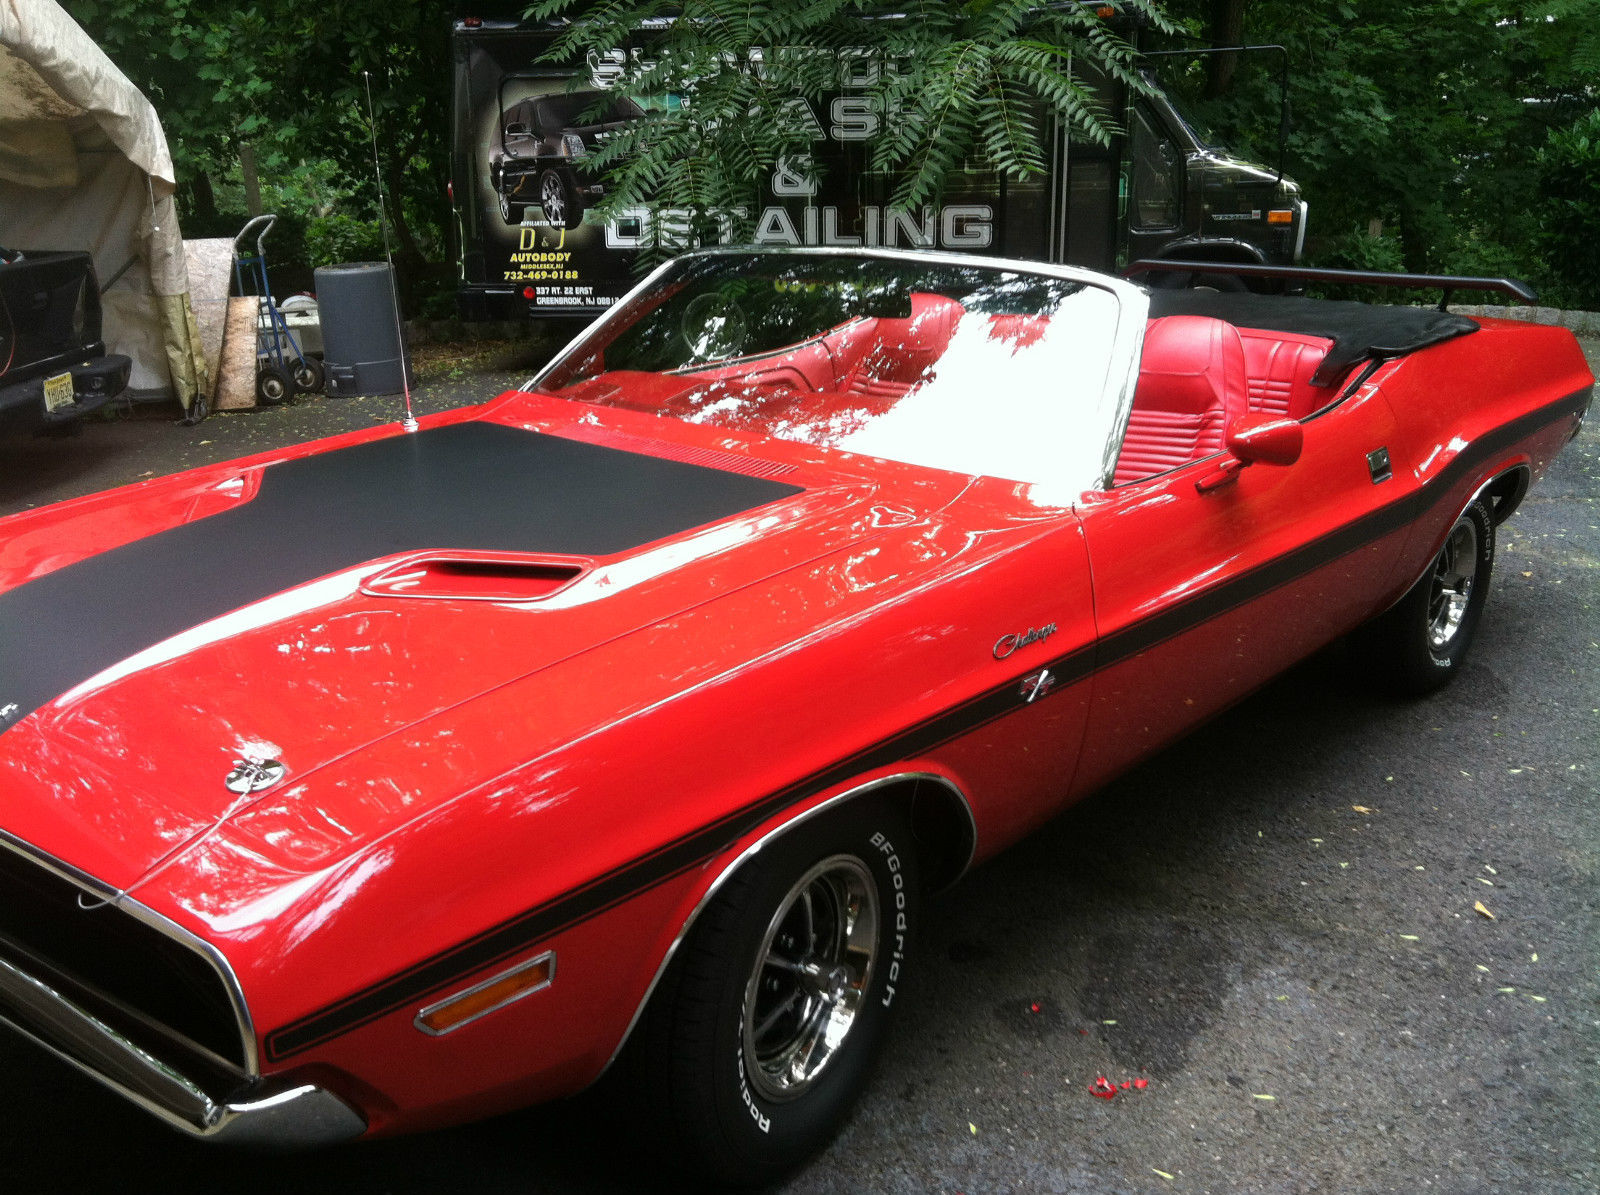 1970 Dodge Challenger Convertible >> Mint 1970 Challenger Convertible R/T , New Restoration, Red/Red/Black Top - Classic Dodge ...